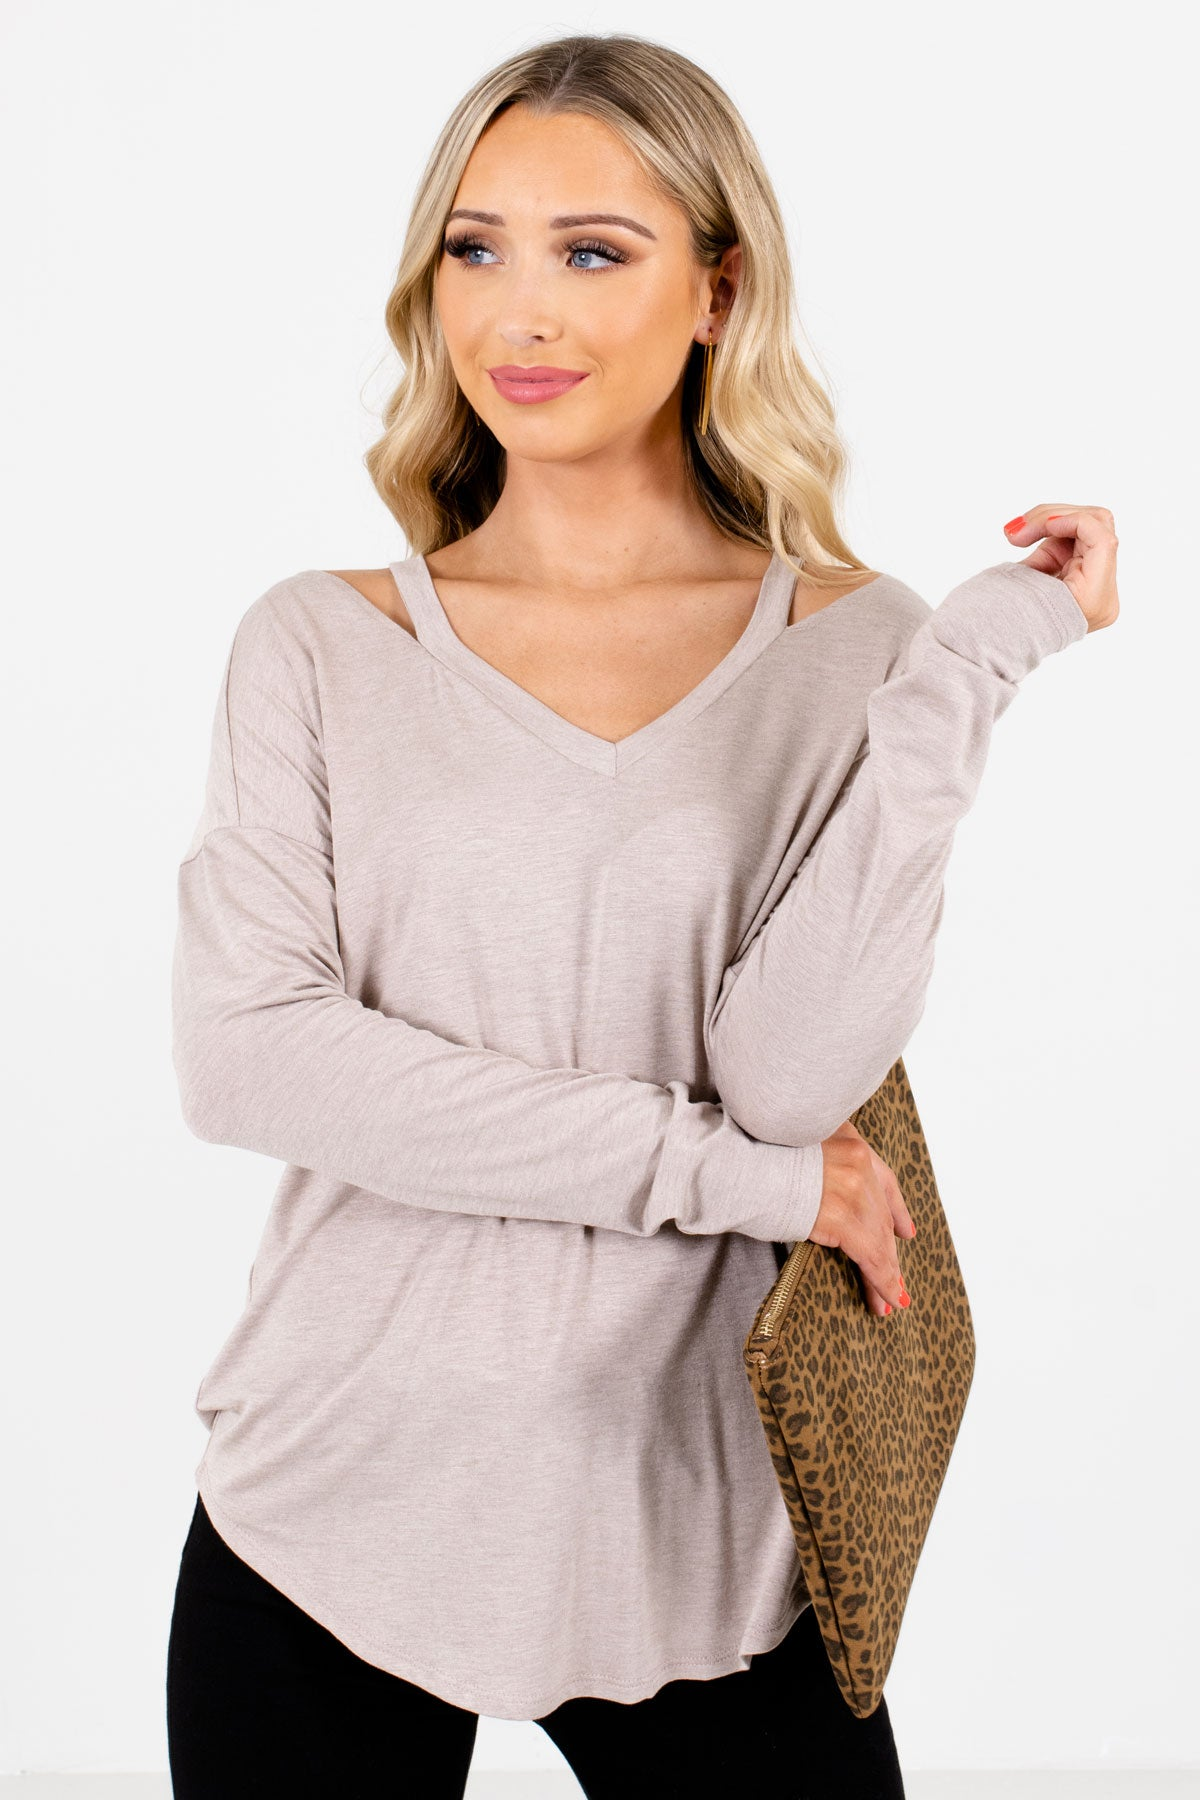 Taupe Brown Cutout Shoulder Detailed Boutique Tops for Women